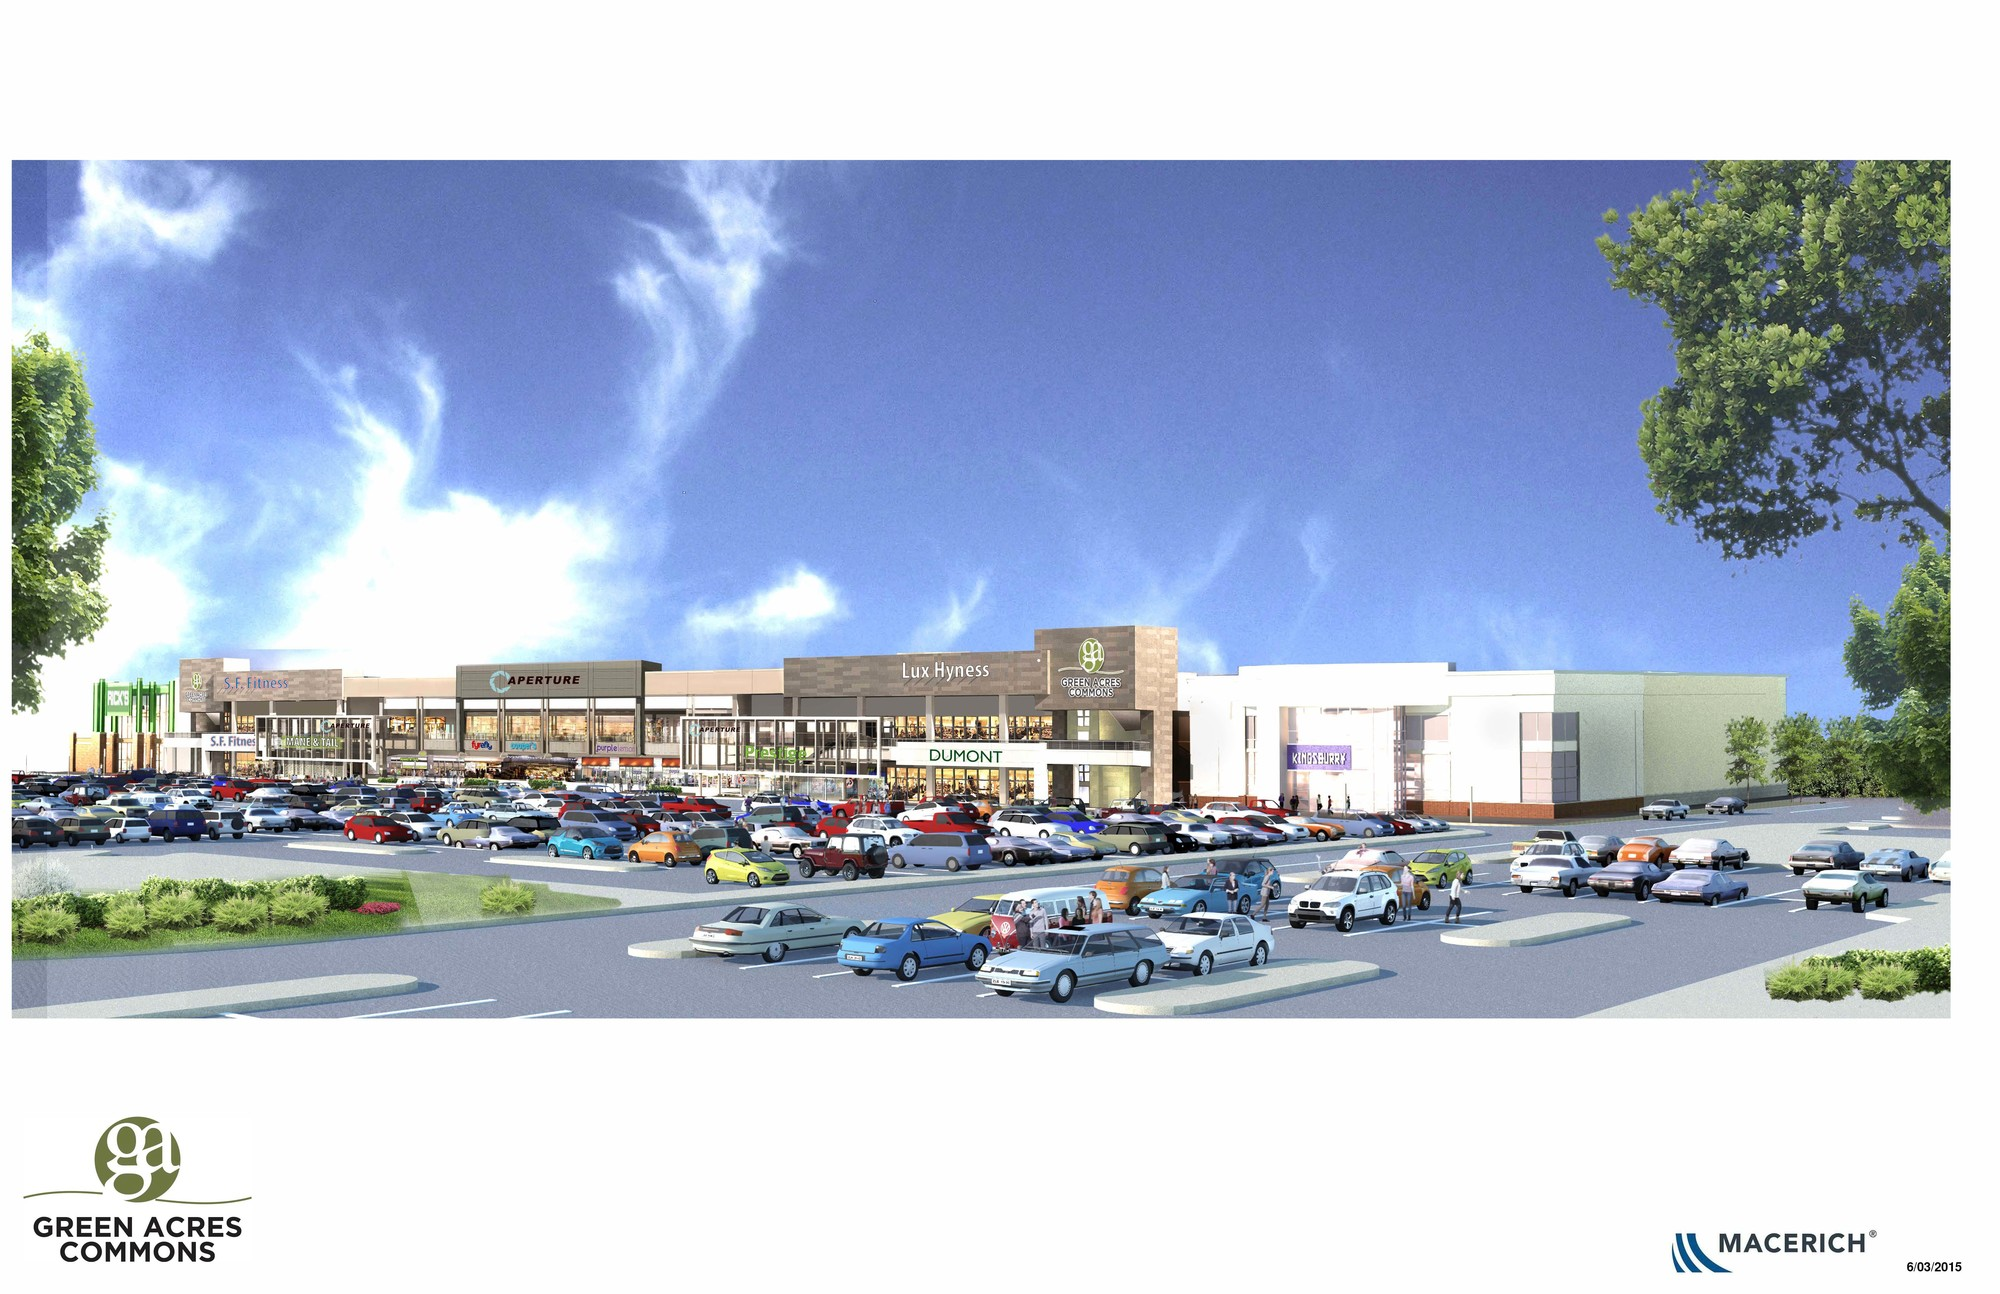 The Green Acres Commons shopping center will be built on 20 acres next to the Green Acres Mall. It is expected to open in fall 2016.